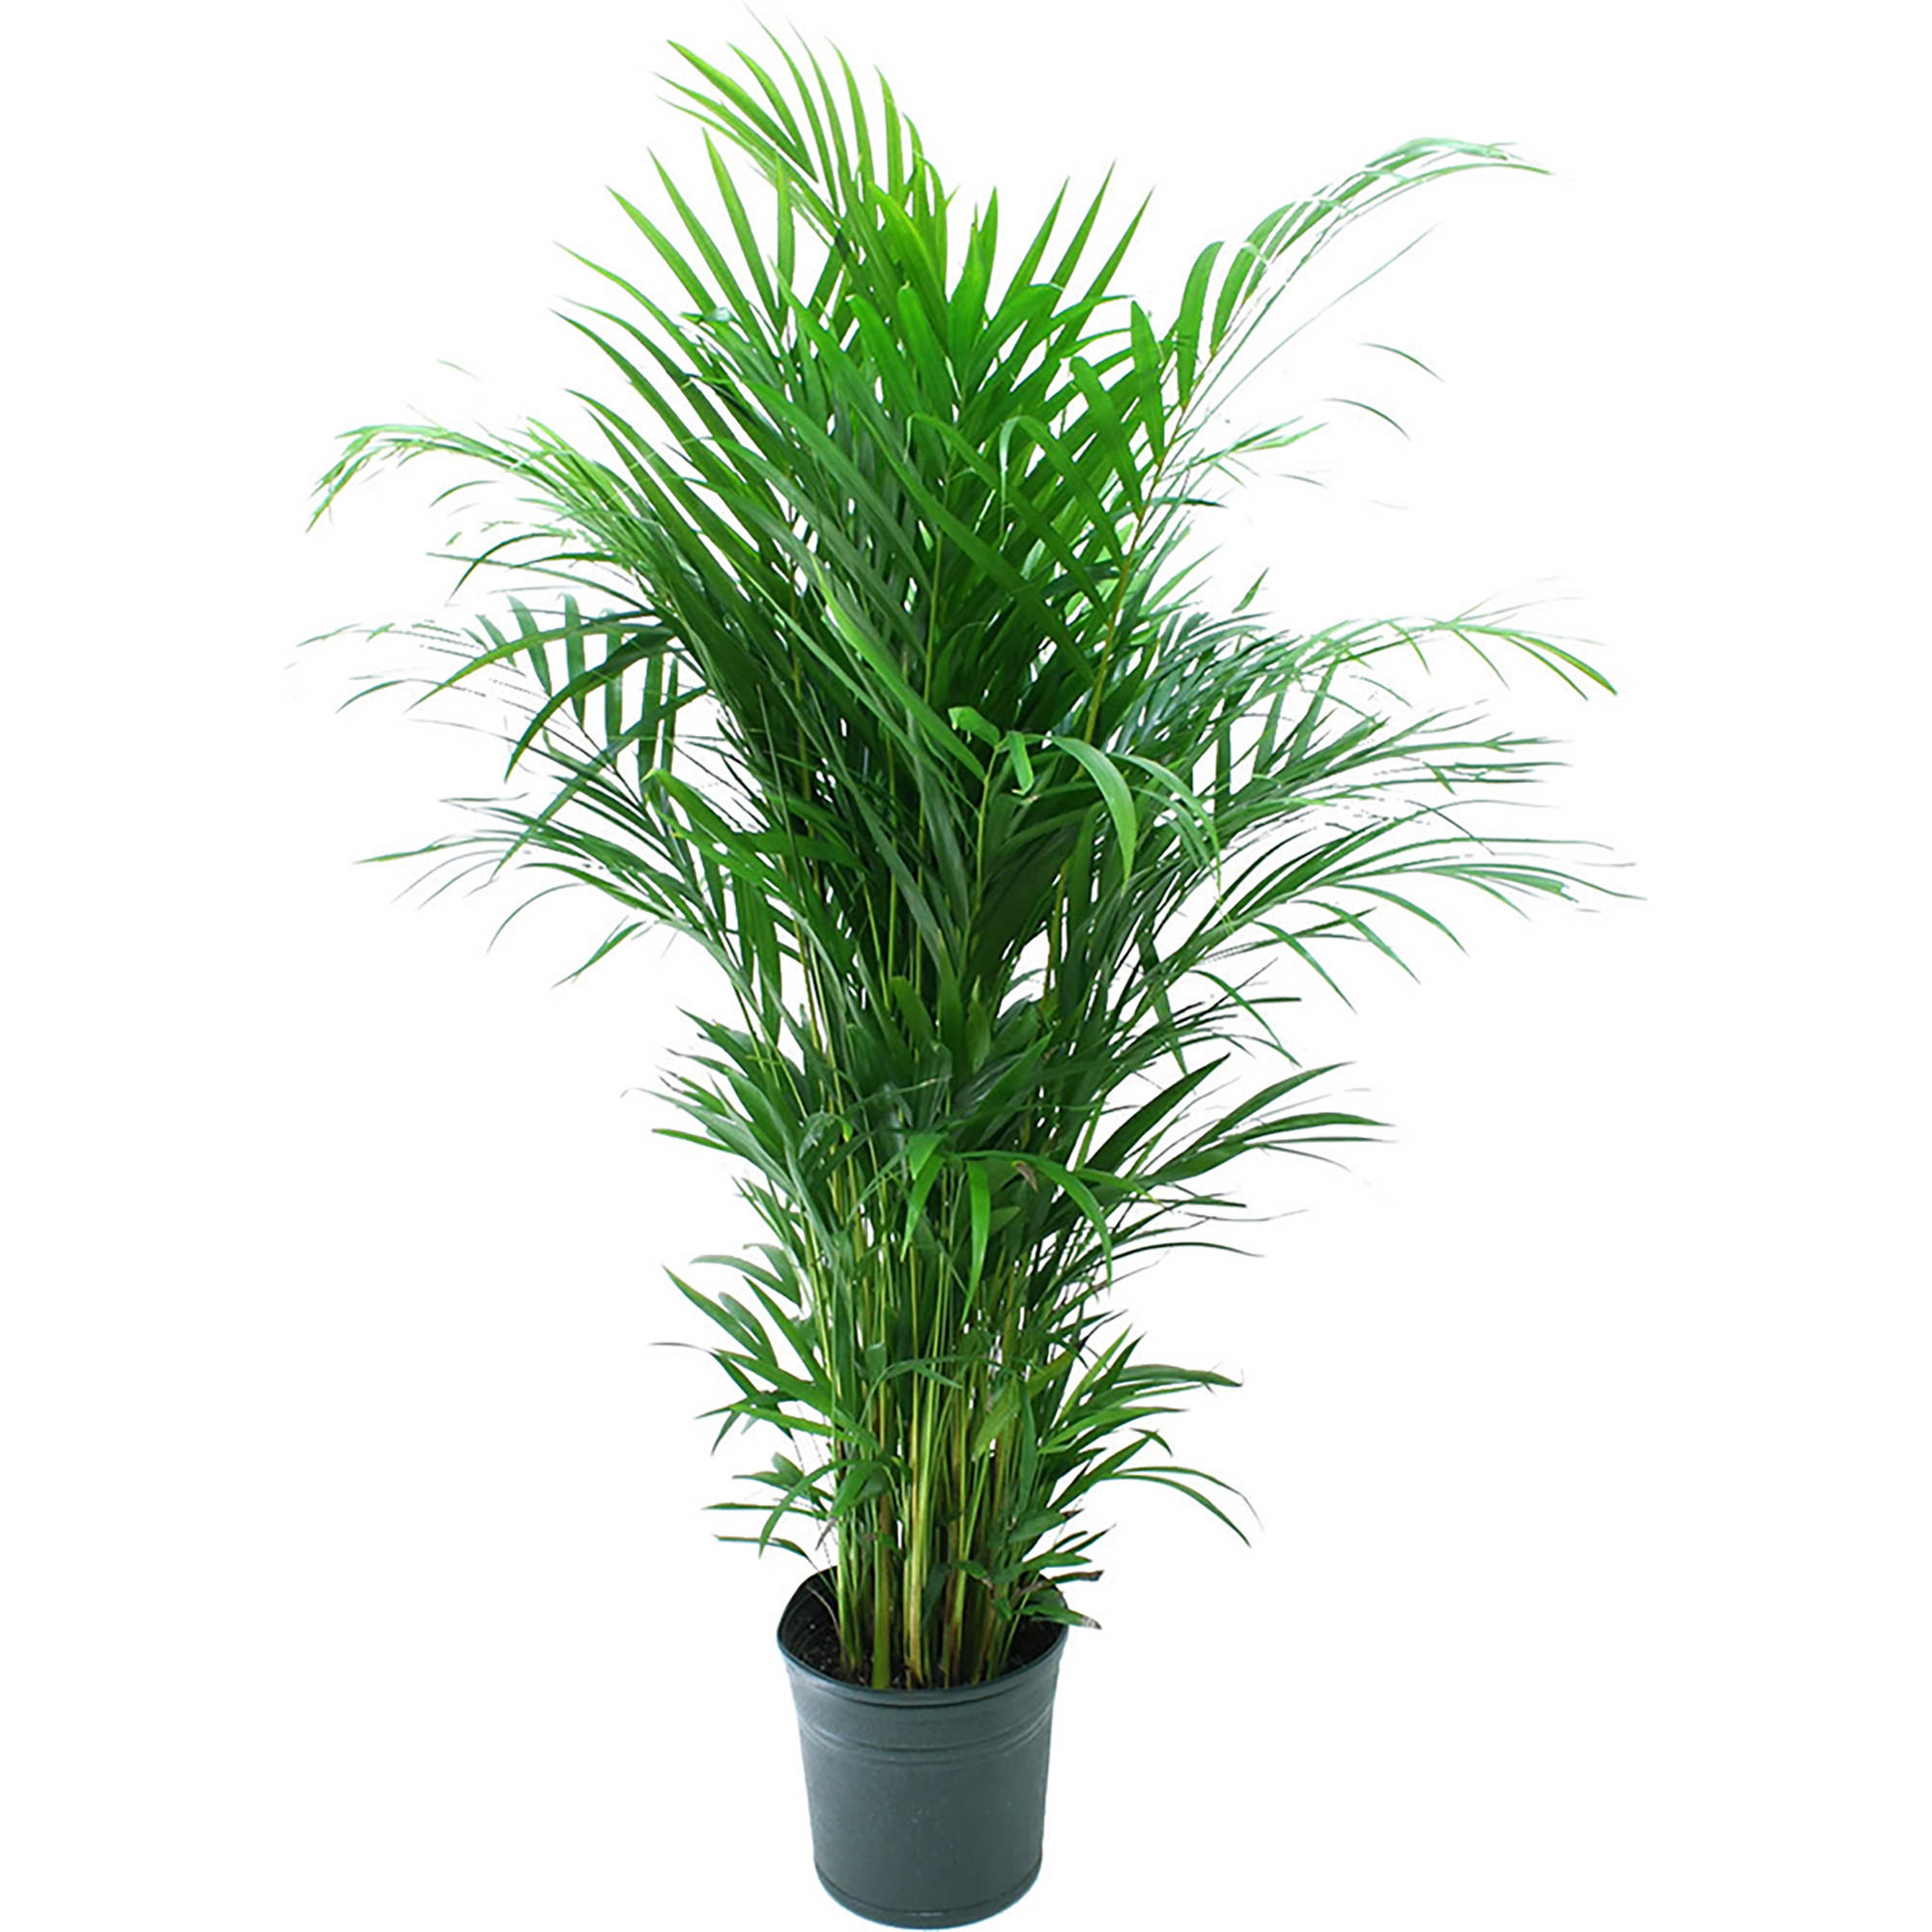 Delray Plants Live Areca Palm in 10 inch Grower Pot